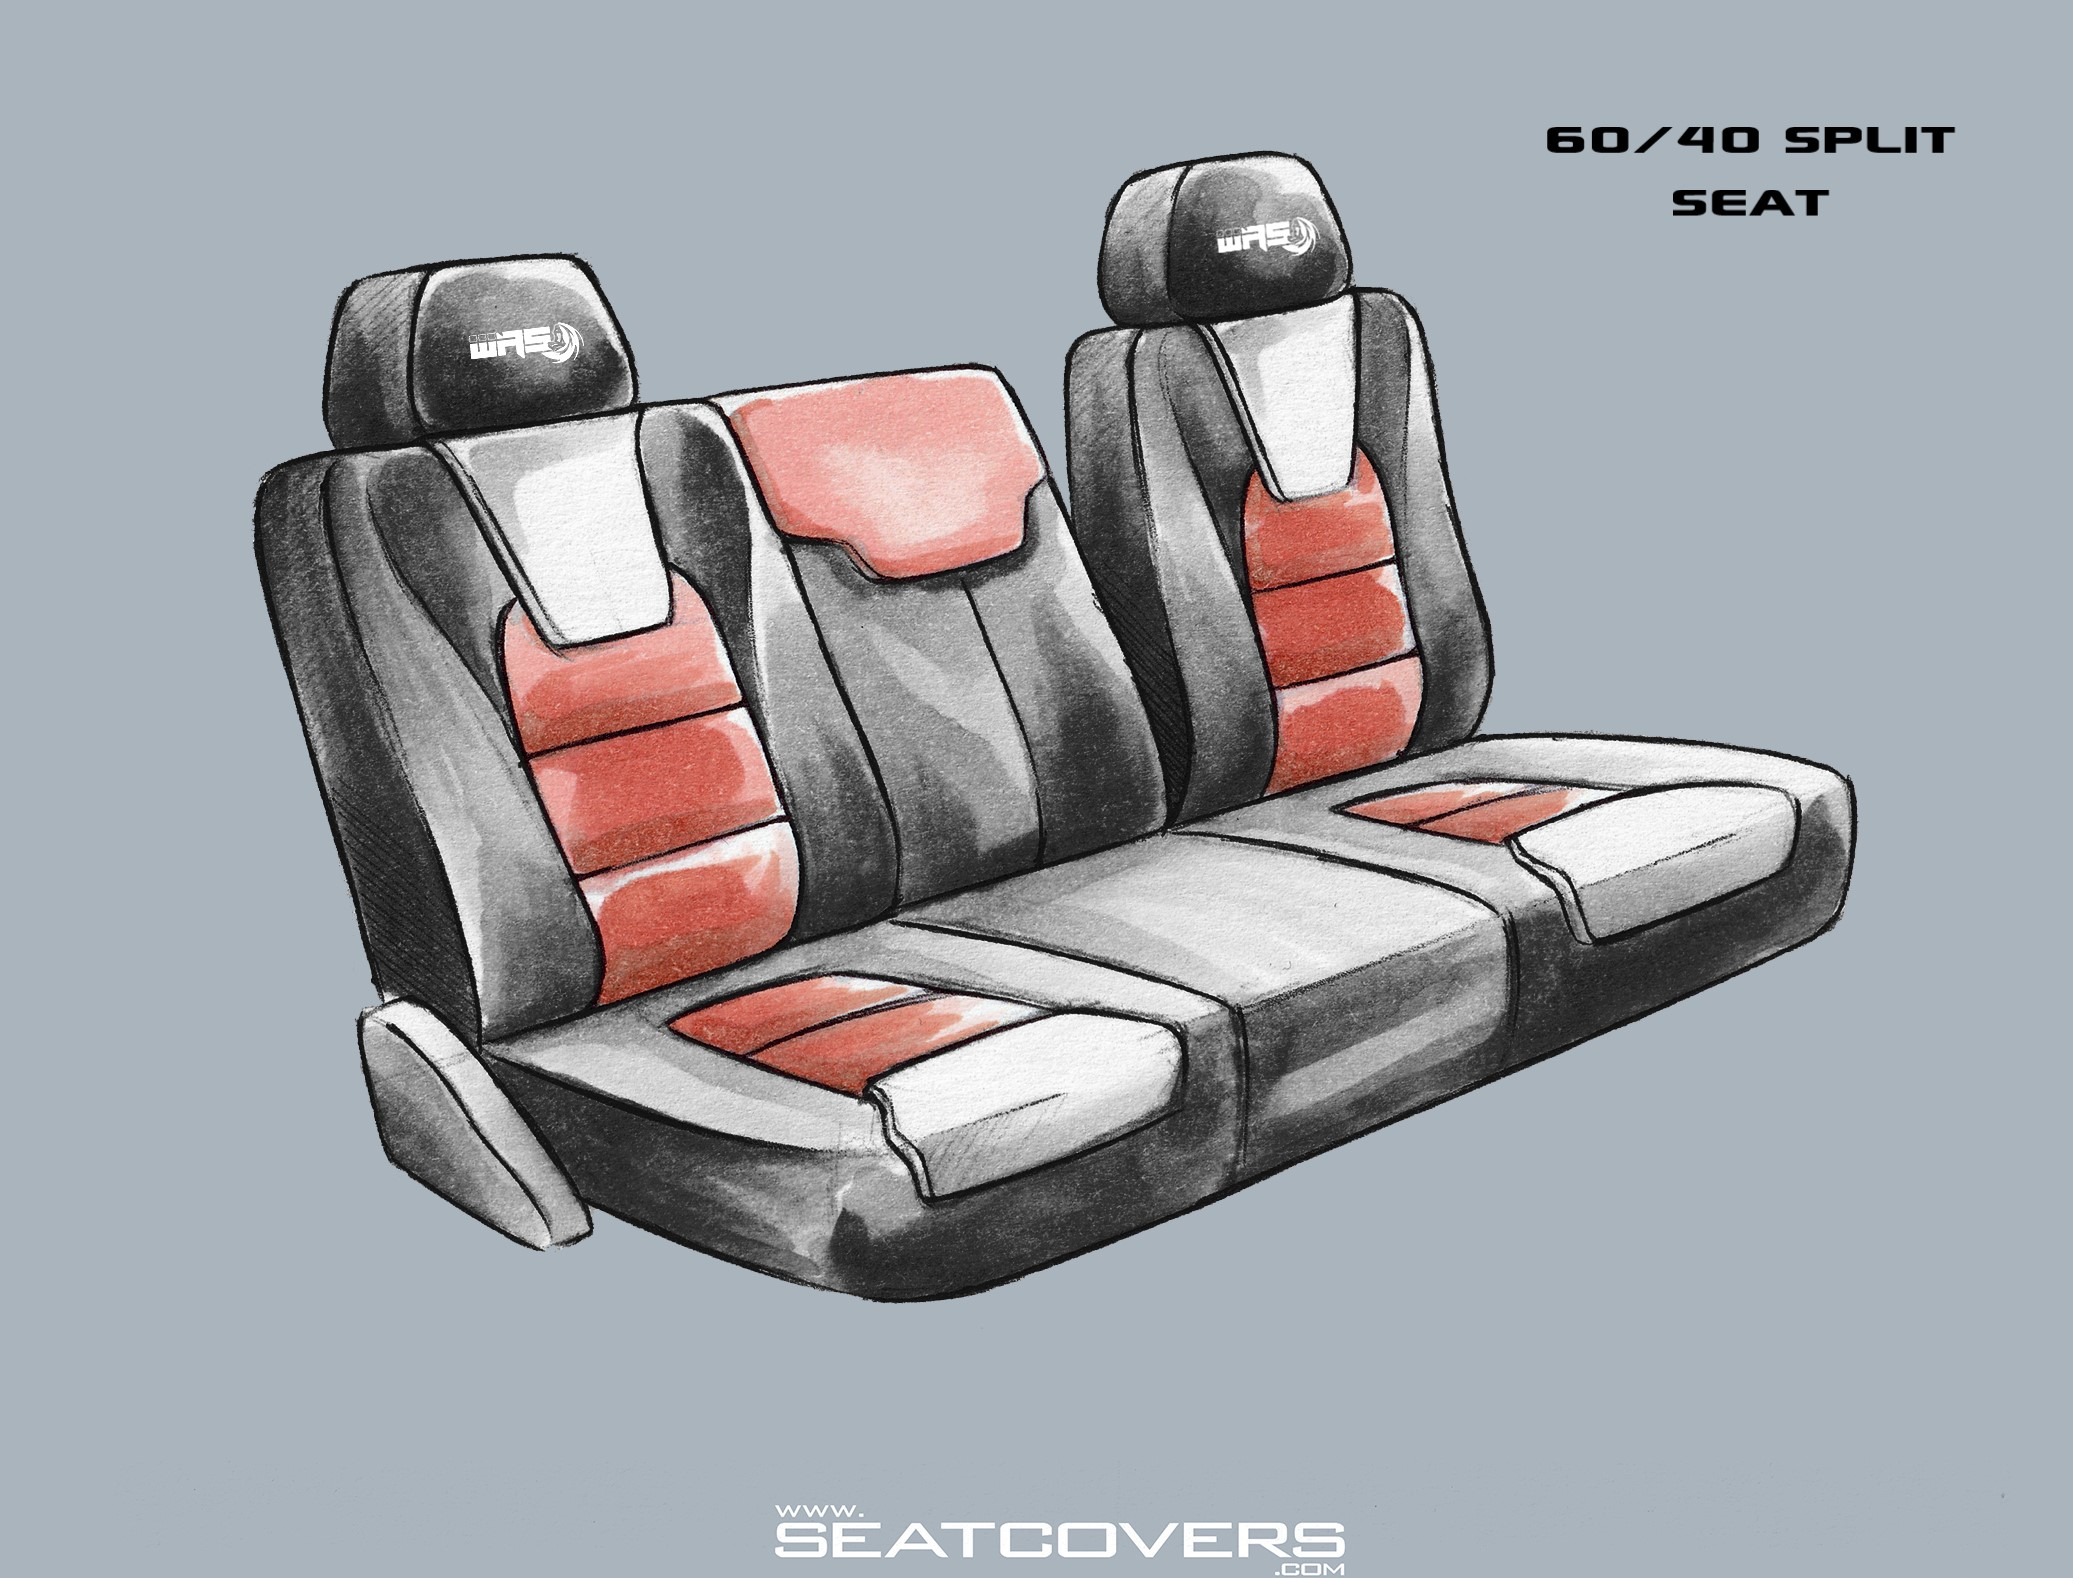 Jeep Seat Covers Wrangler Seat Jeep Wrangler Rear 60:40 seat covers seatcovers.com heavy duty seat covers for trucks